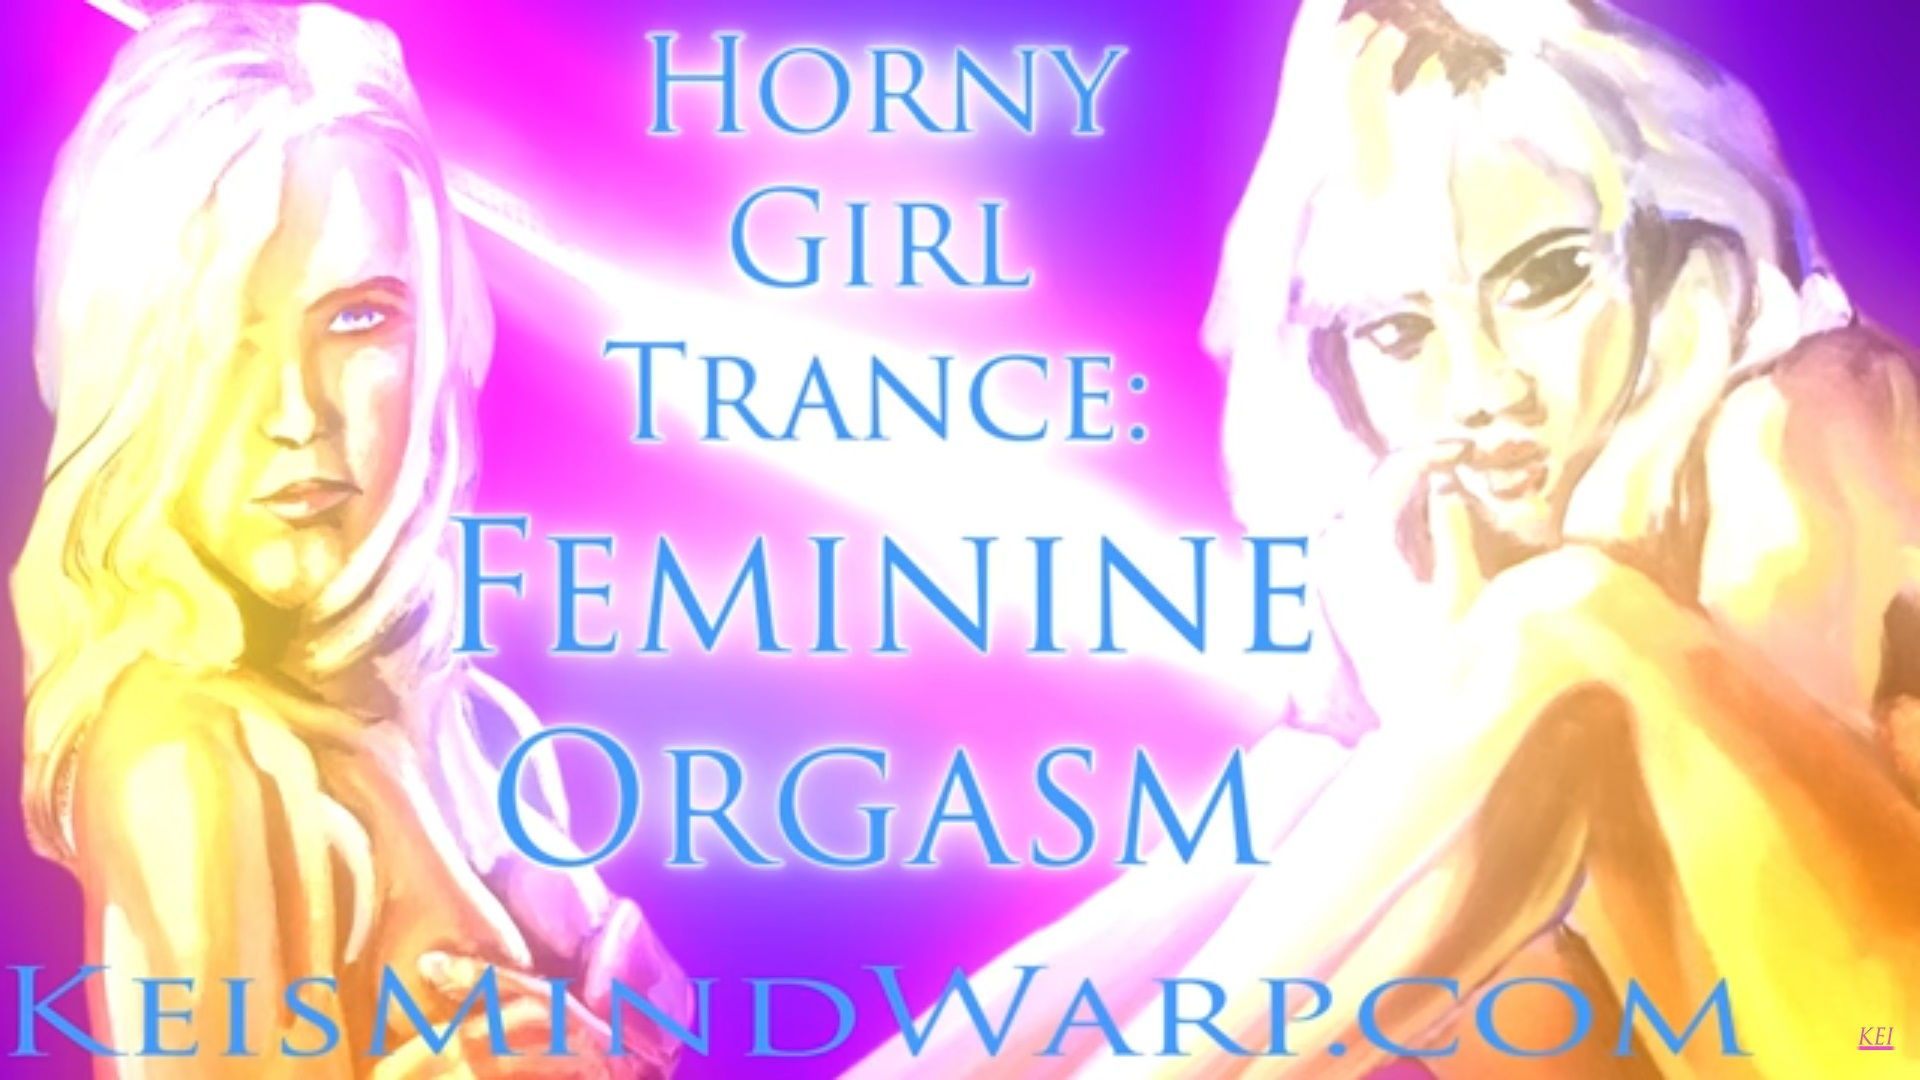 Horny Girl Trance Orgasm (MP3)